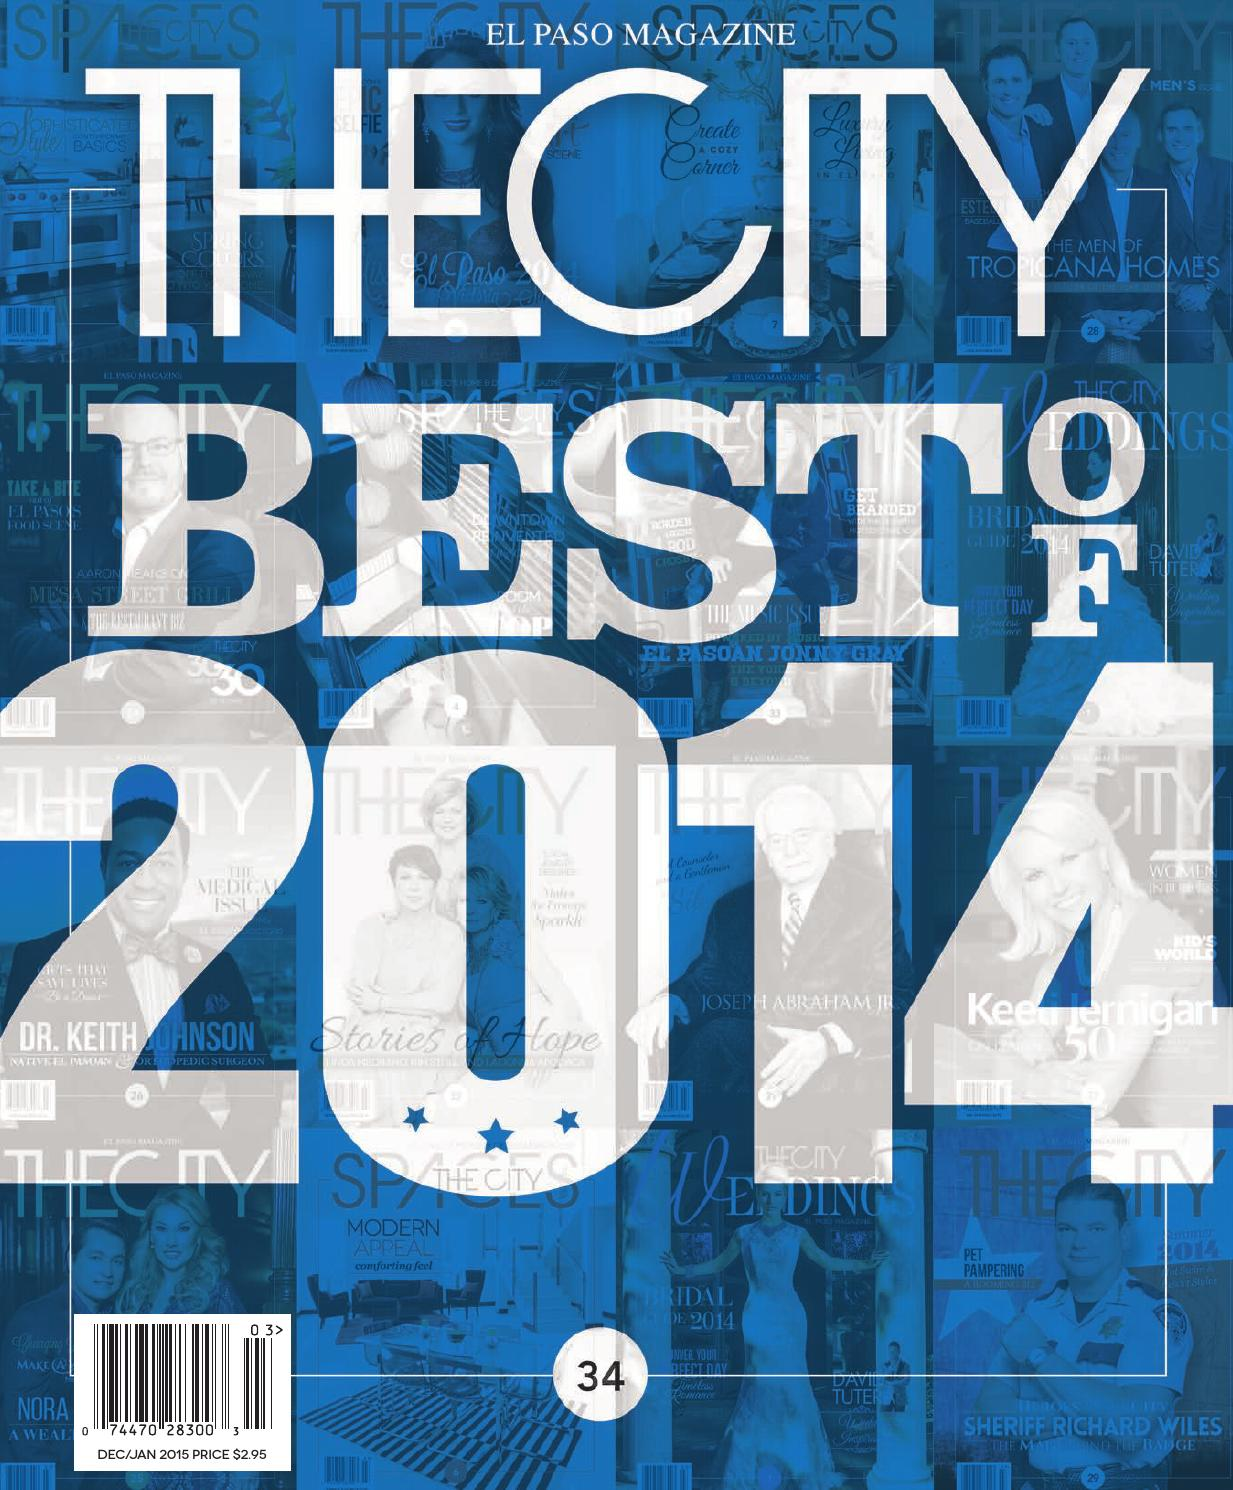 the city magazien el paso texas by zulem borider issuu